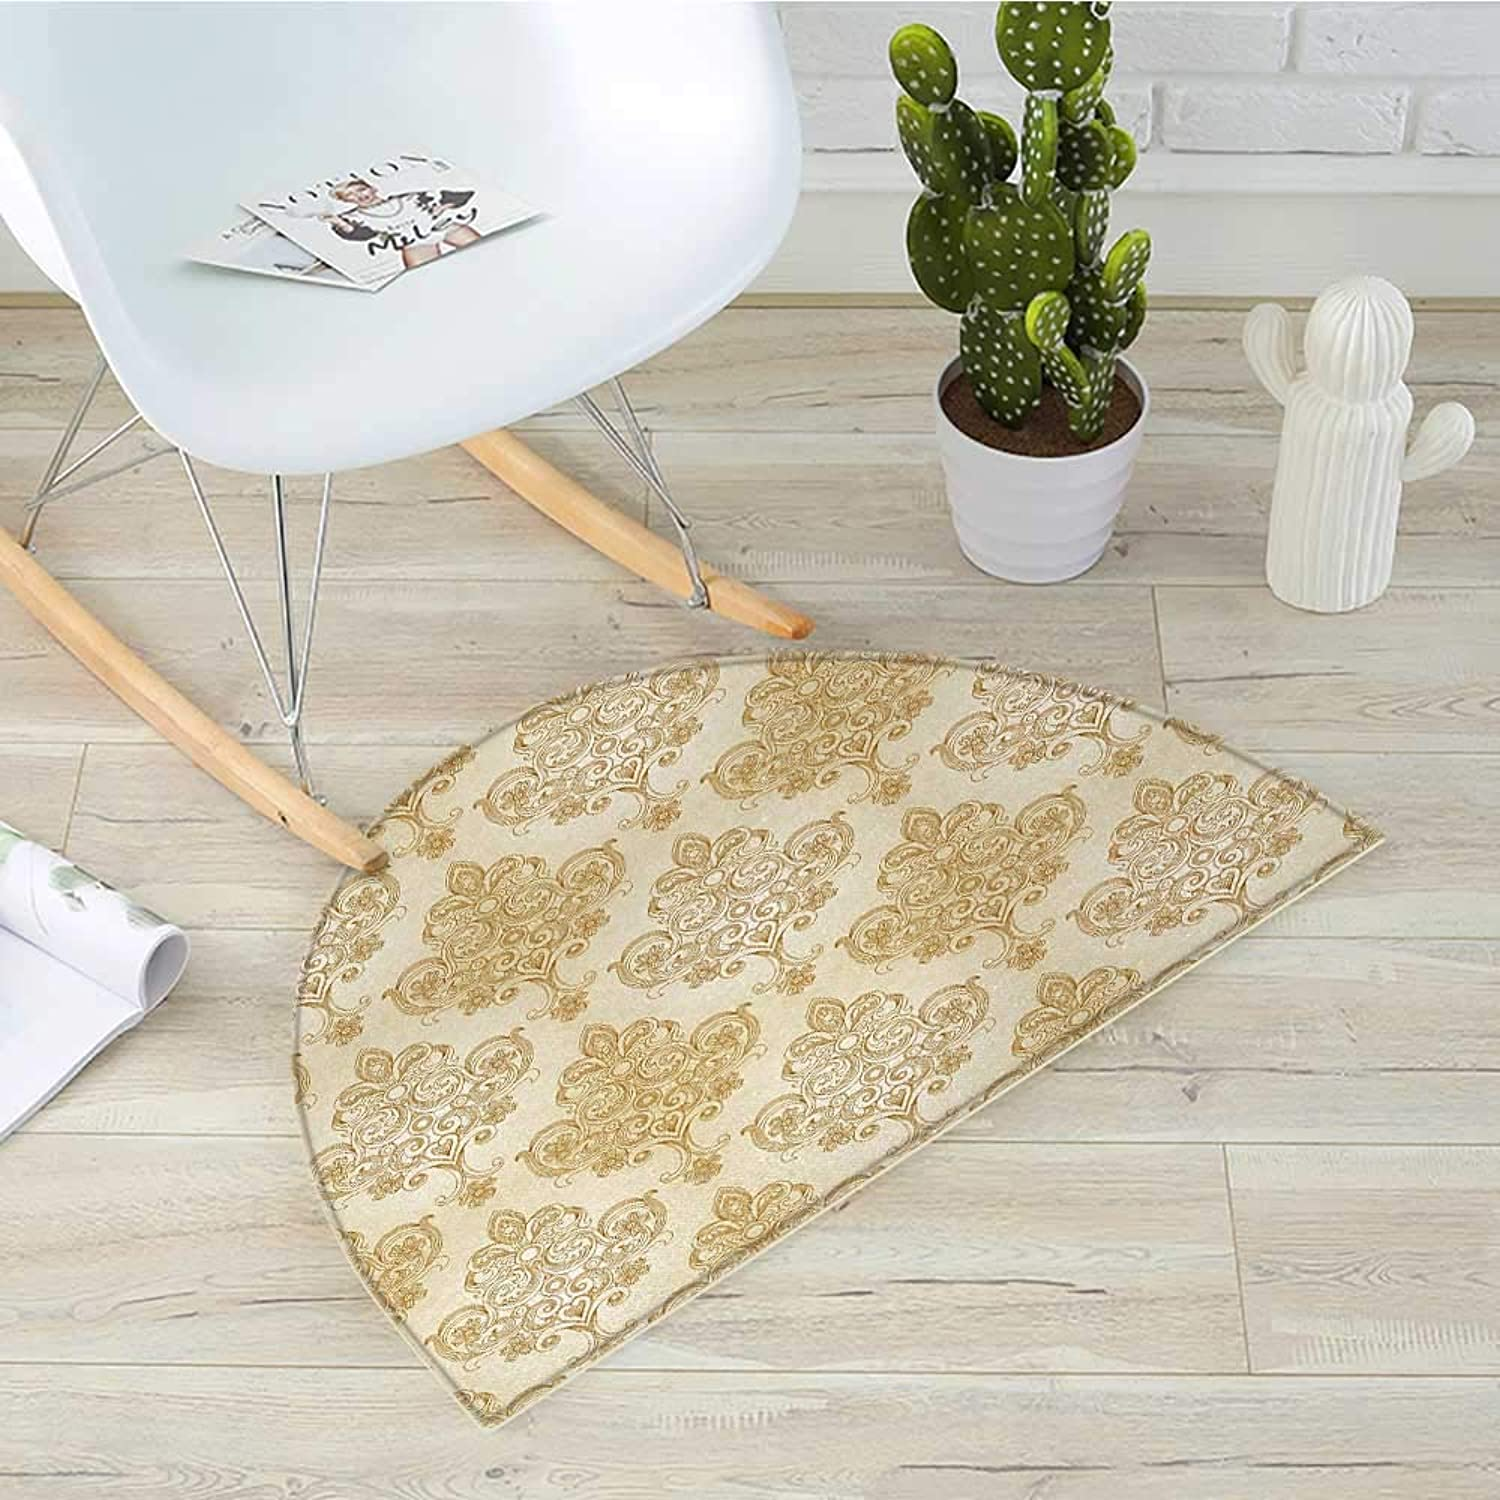 Ivory Half Round Door mats Vintage Baroque Pattern with Curved Flower Lines Rococo Style Ornate Artwork Bathroom Mat H 31.5  xD 47.2  Cream Pale Brown